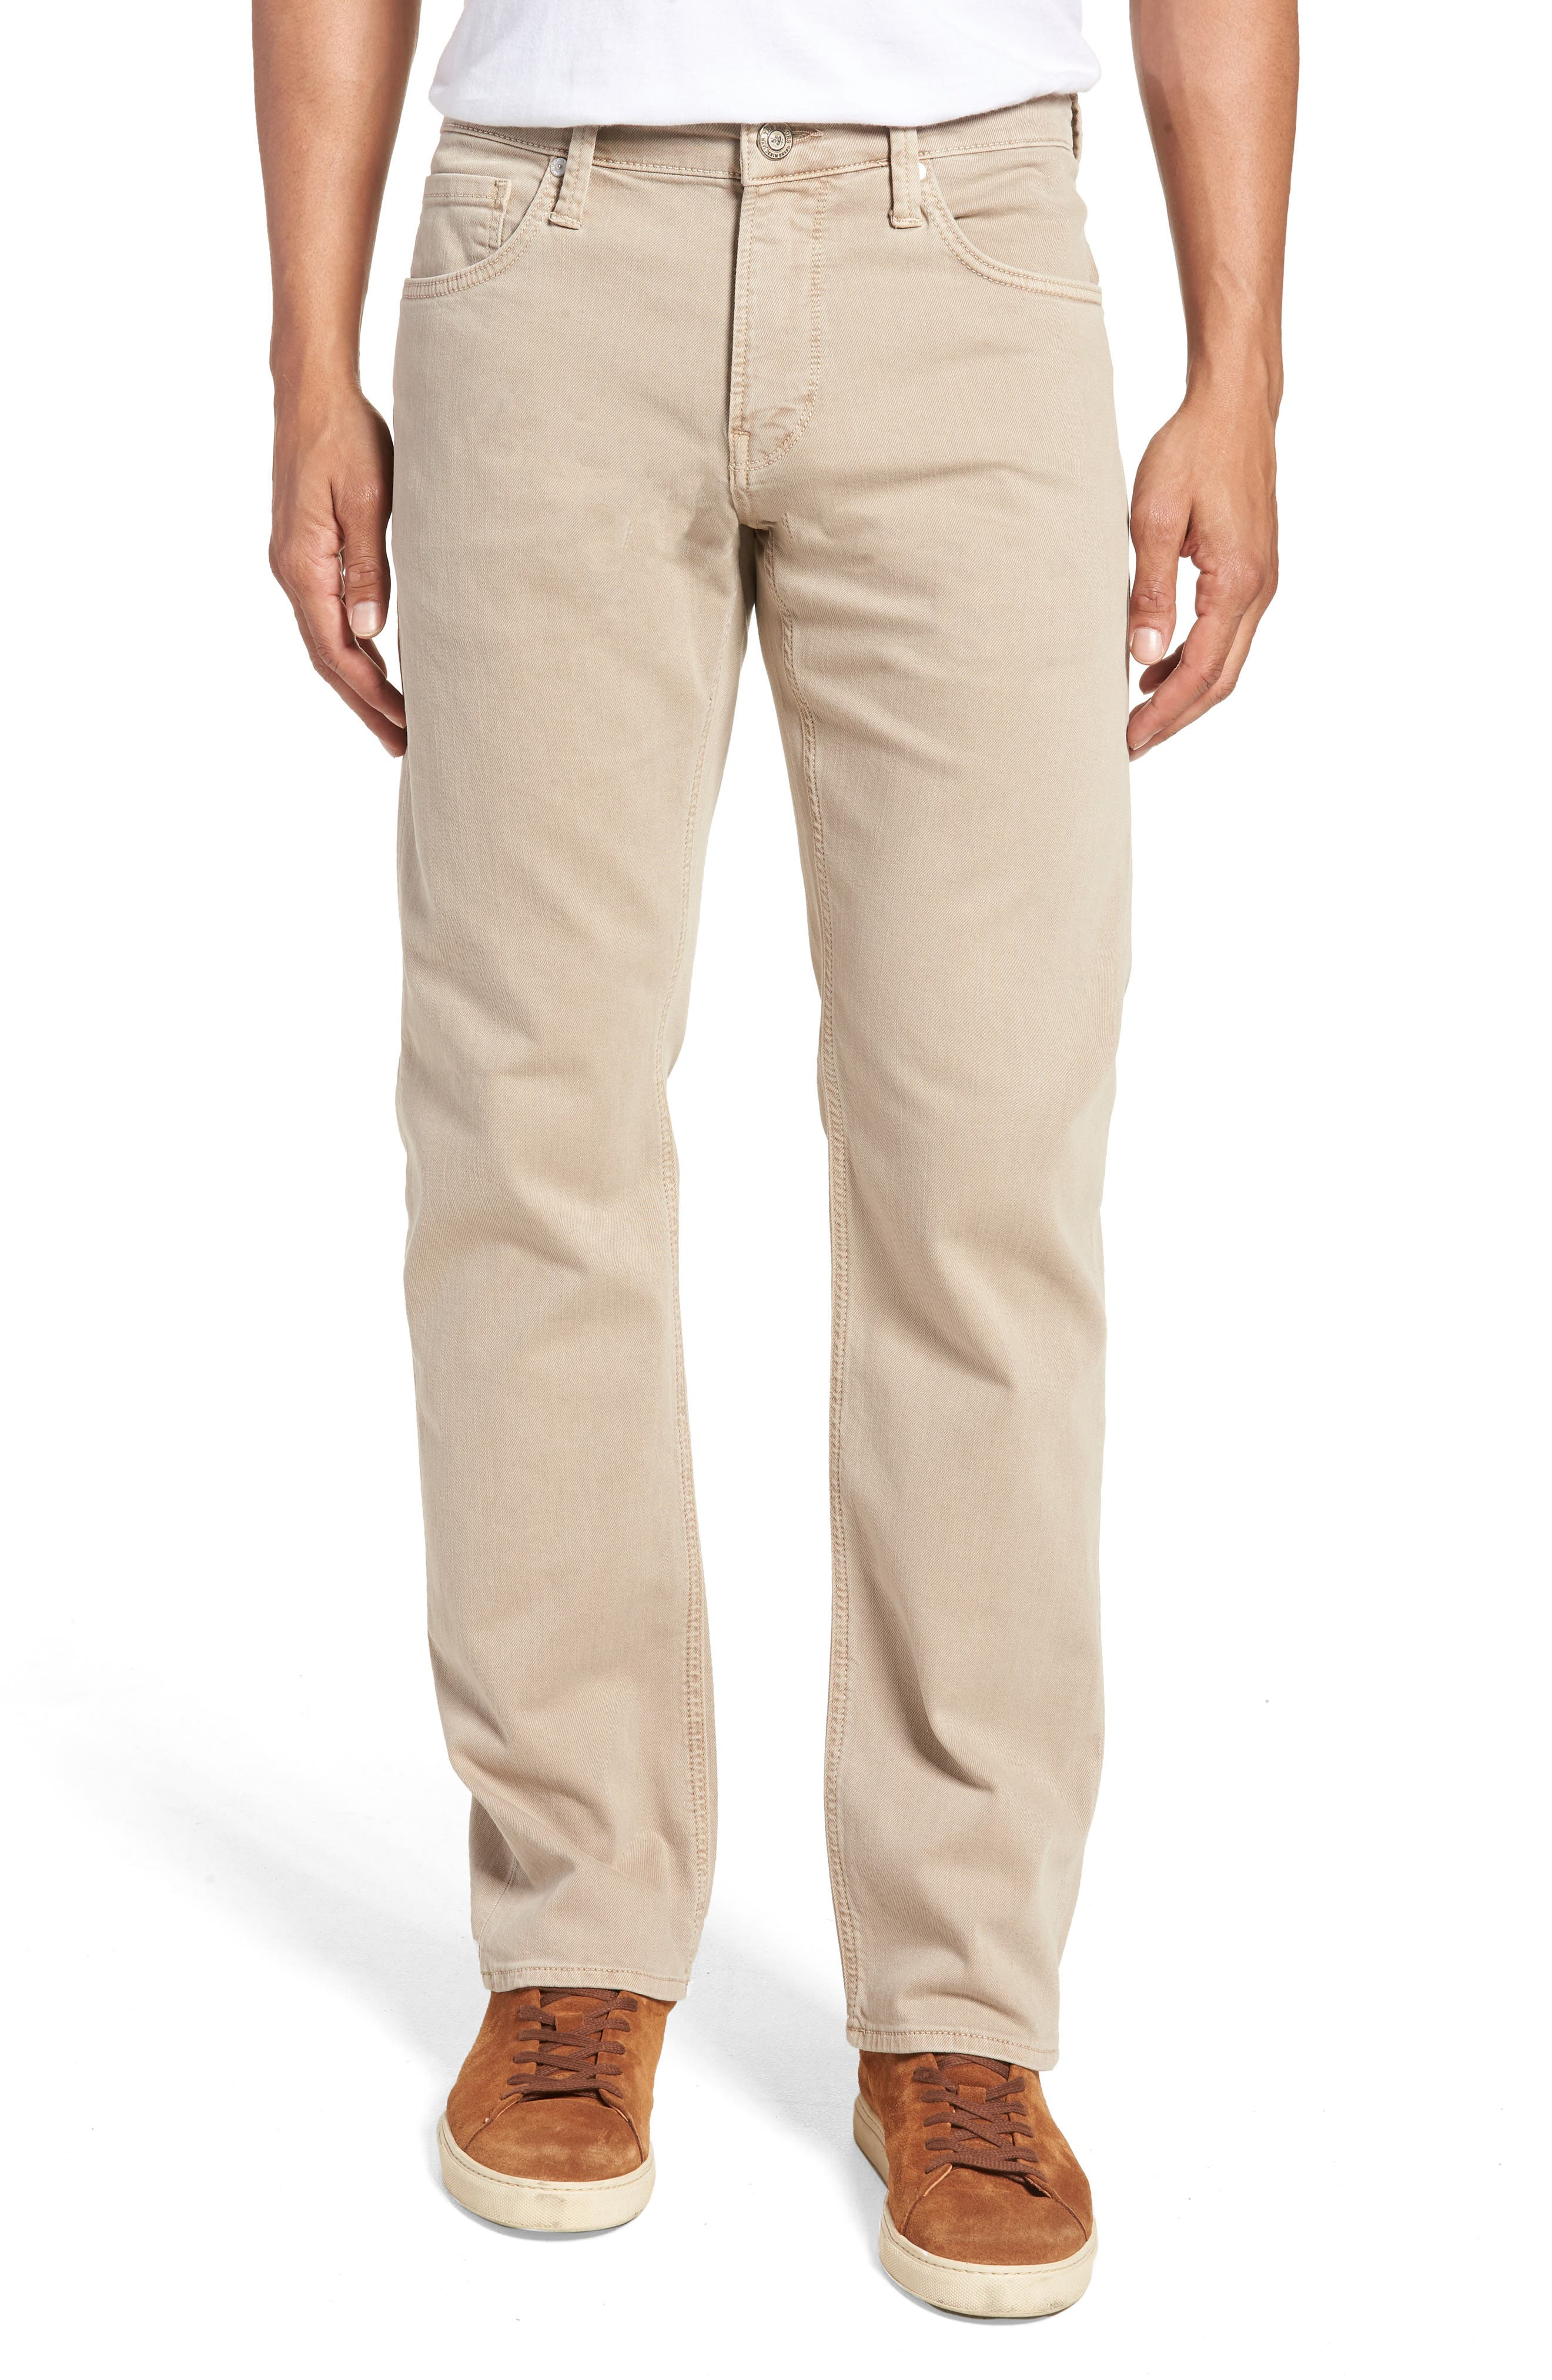 Zach Straight Leg Twill Pants,                         Main,                         color, Tan Washed